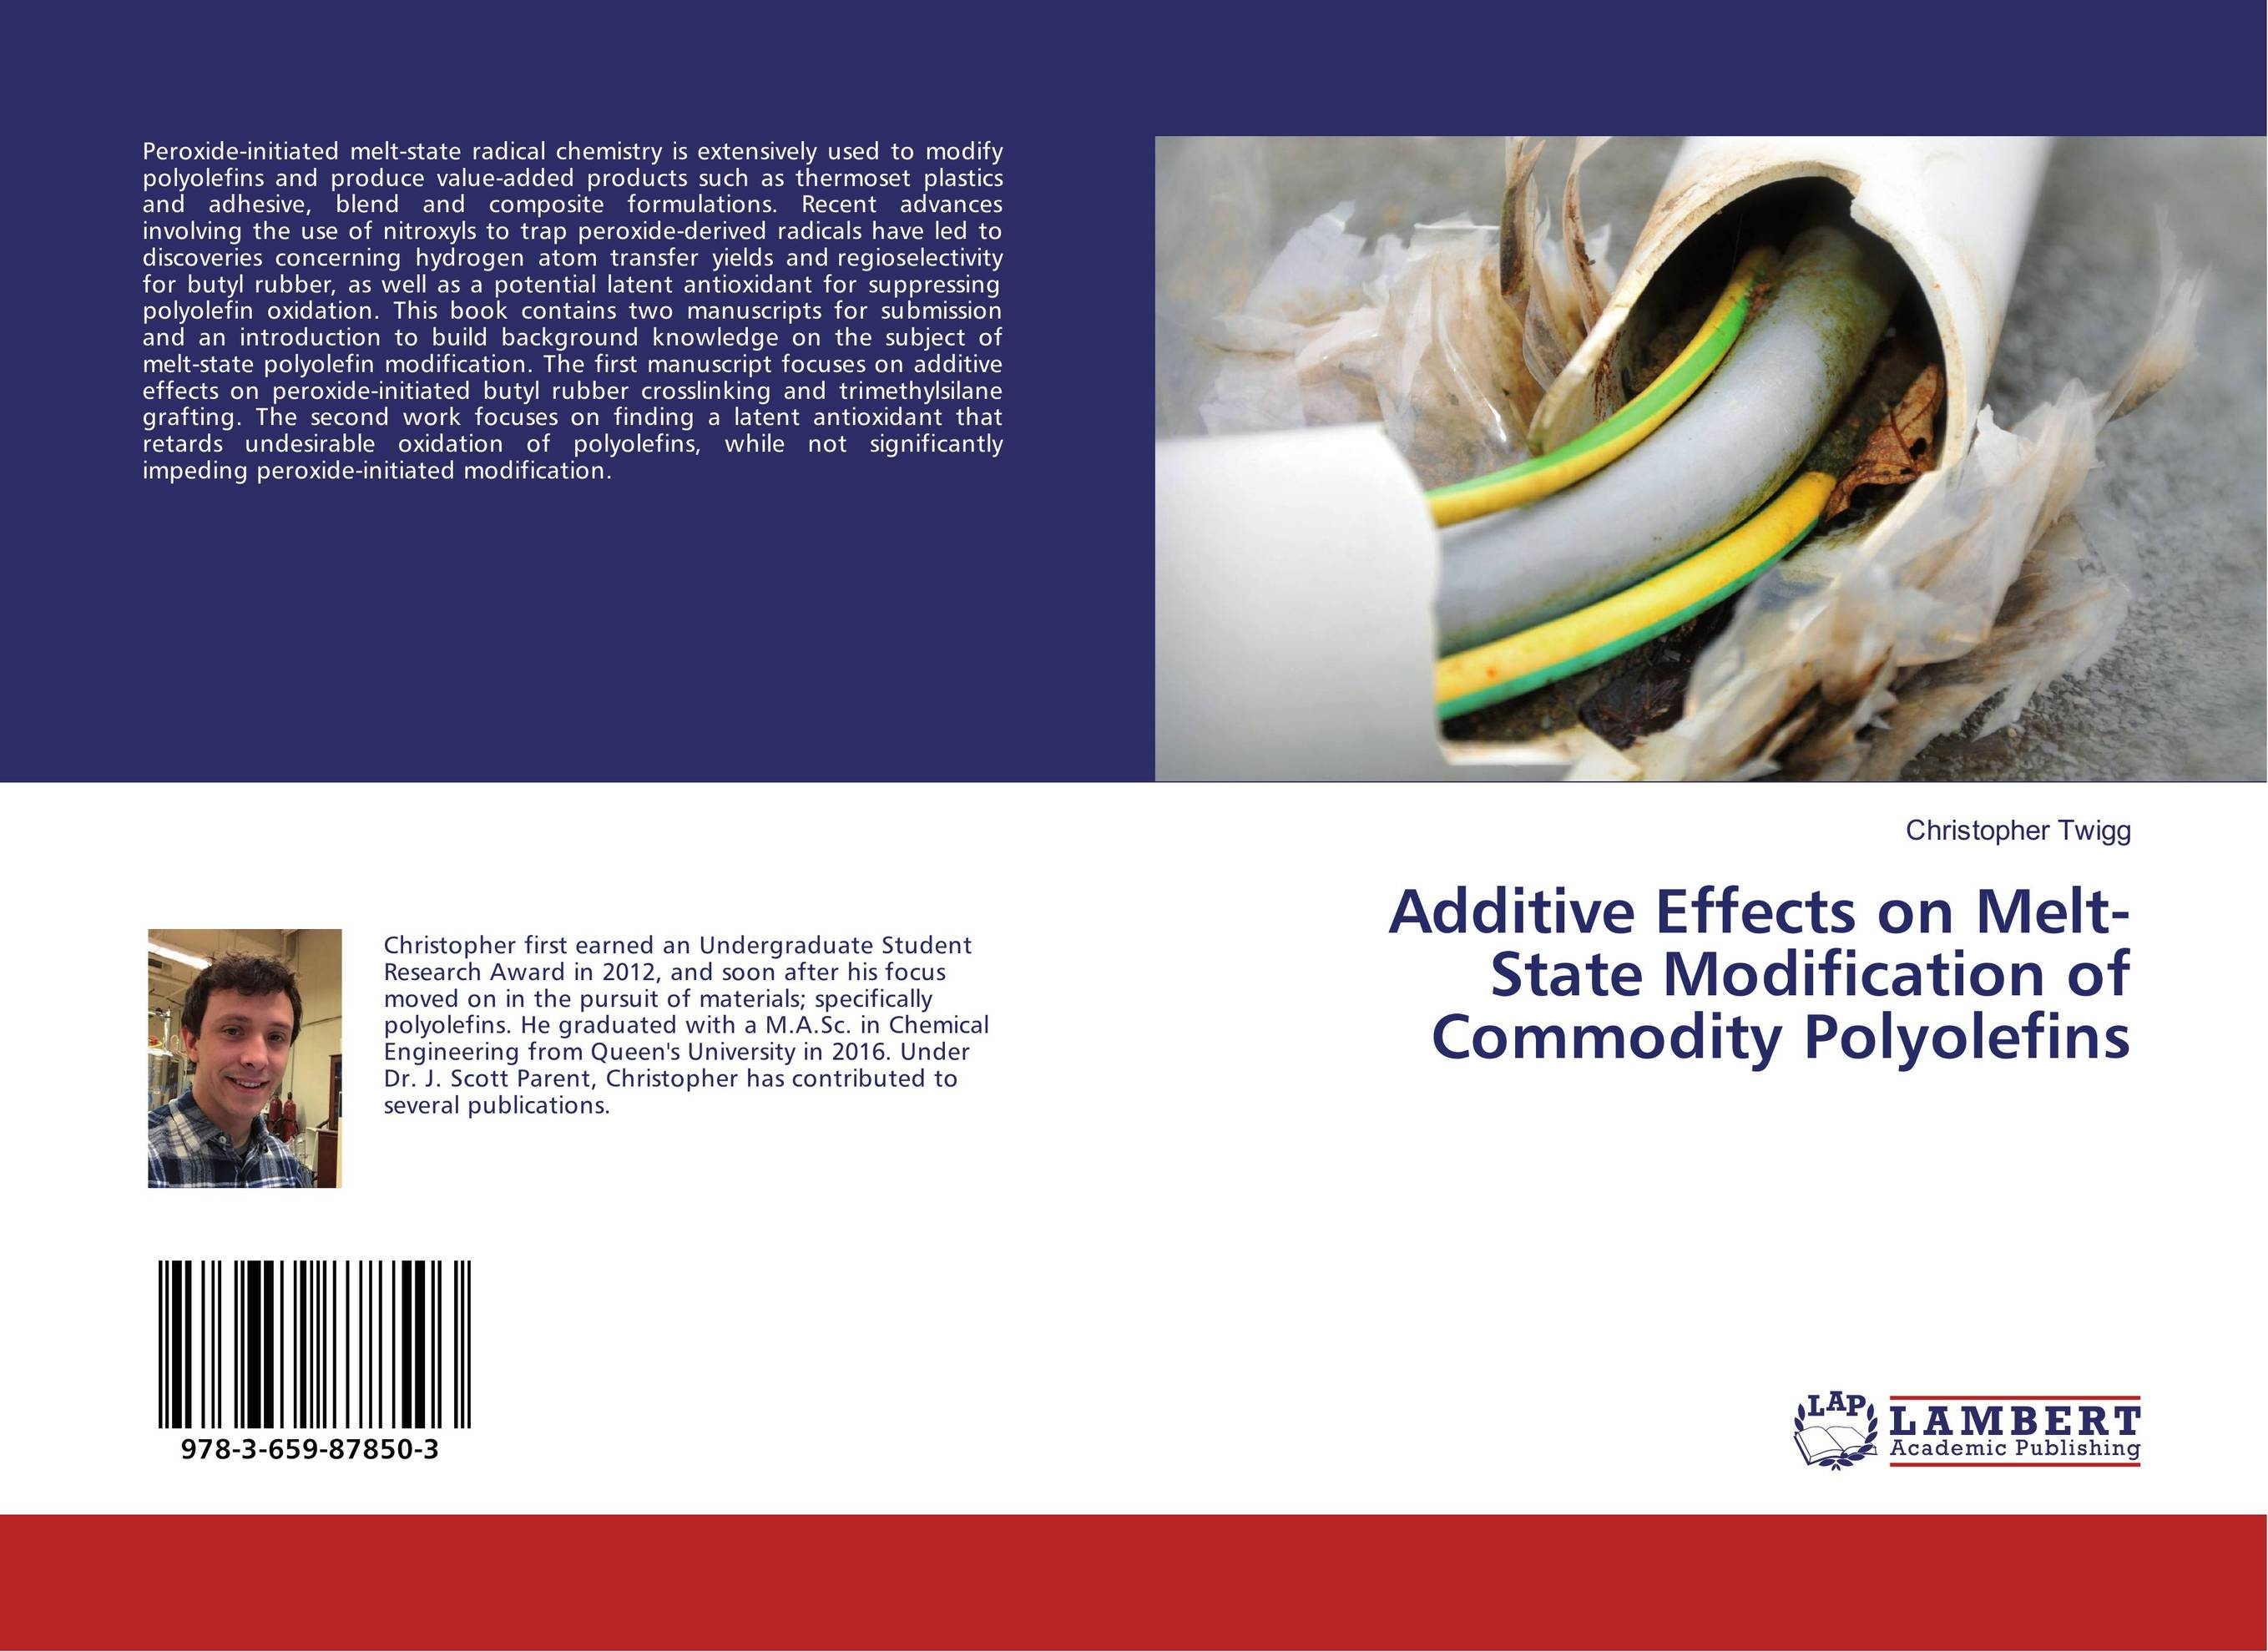 Additive Effects on Melt-State Modification of Commodity Polyolefins affair of state an